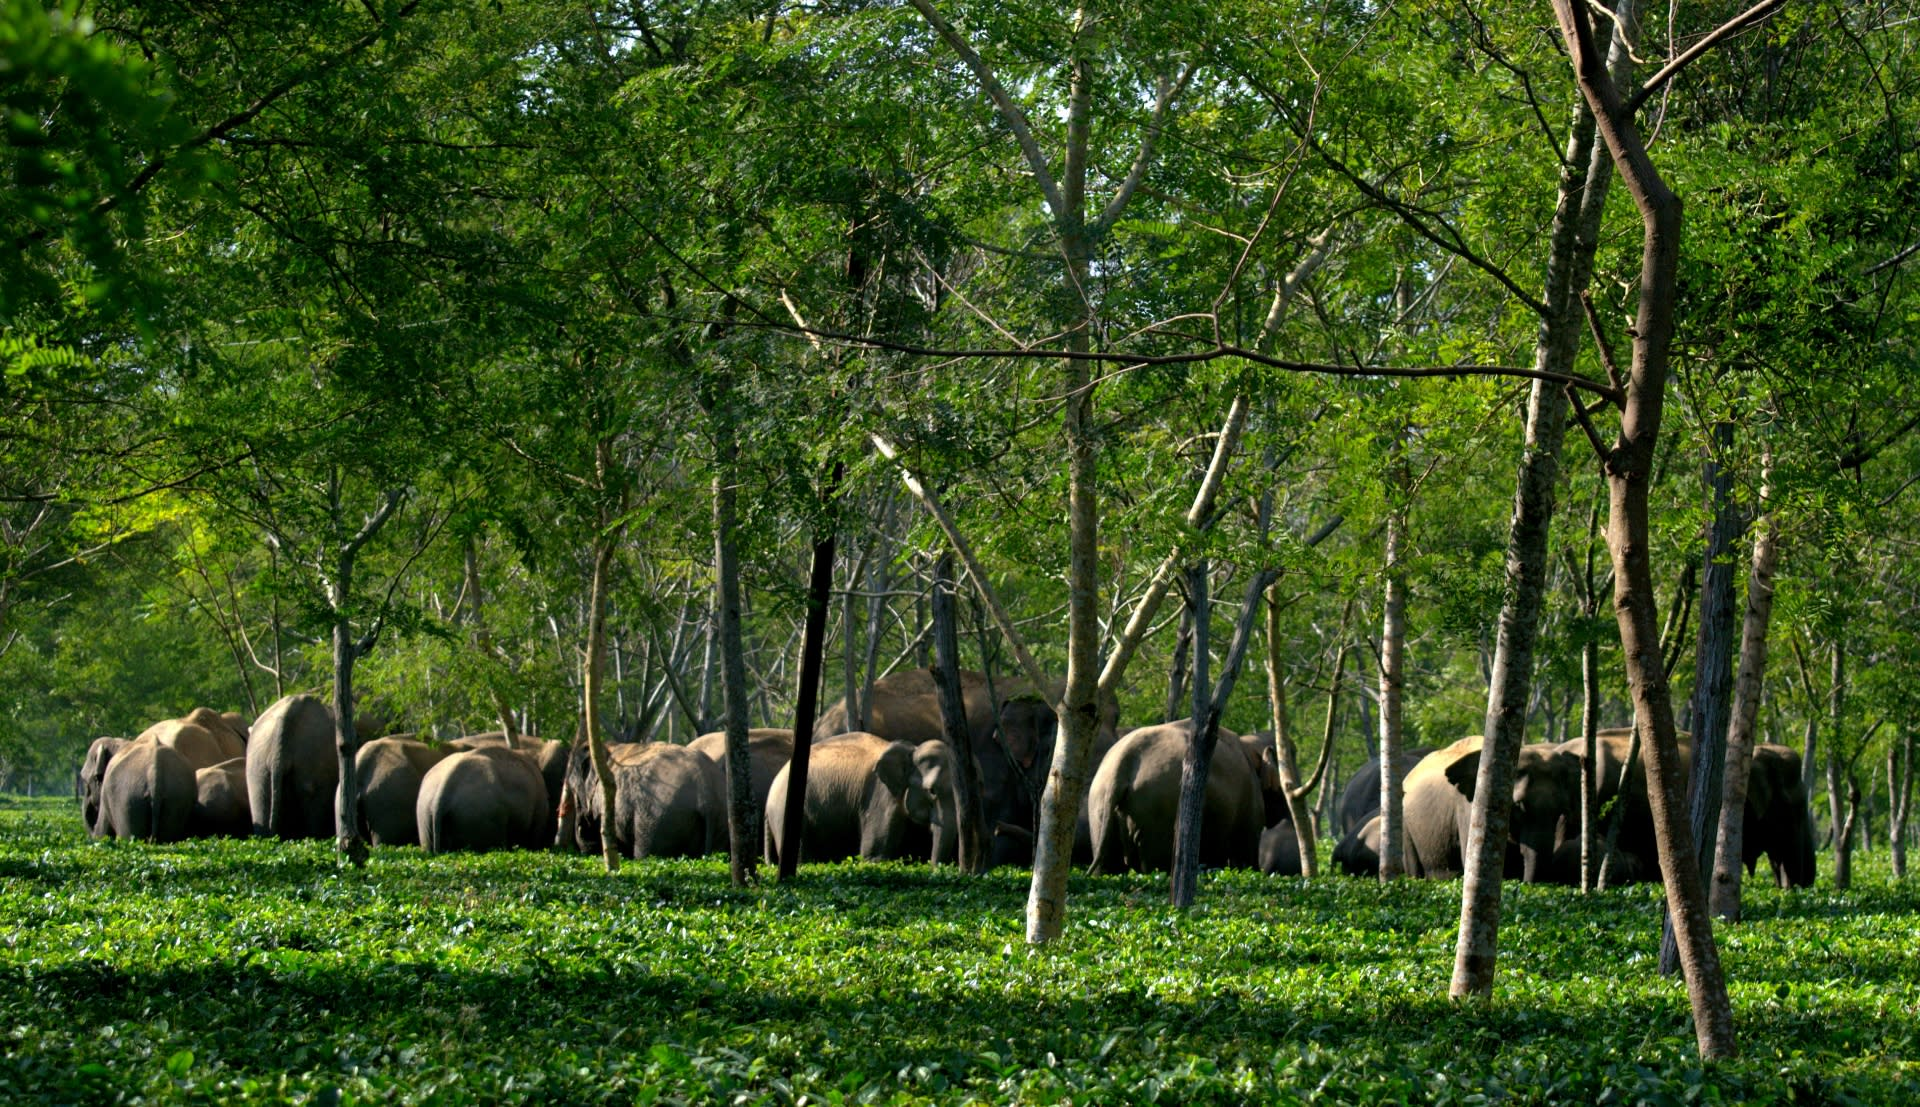 A herd of wild elephants roams inside Adabarie Tea Estate in Assam's Sonitpur district. Photo: Saurav Borkataky